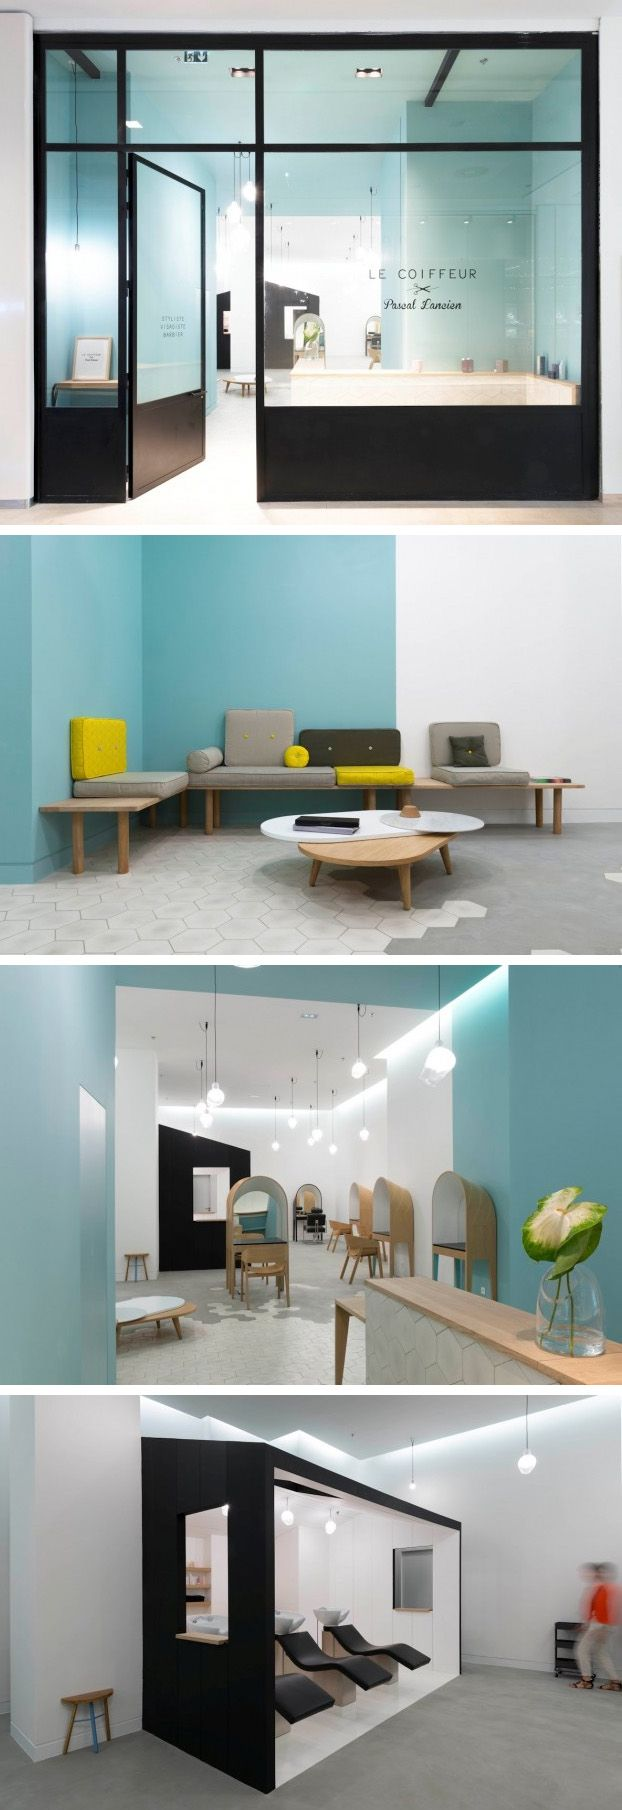 Margaux Keller In Association With Architect Bertrand Guillon Have Designed Le Coiffeur A Hair